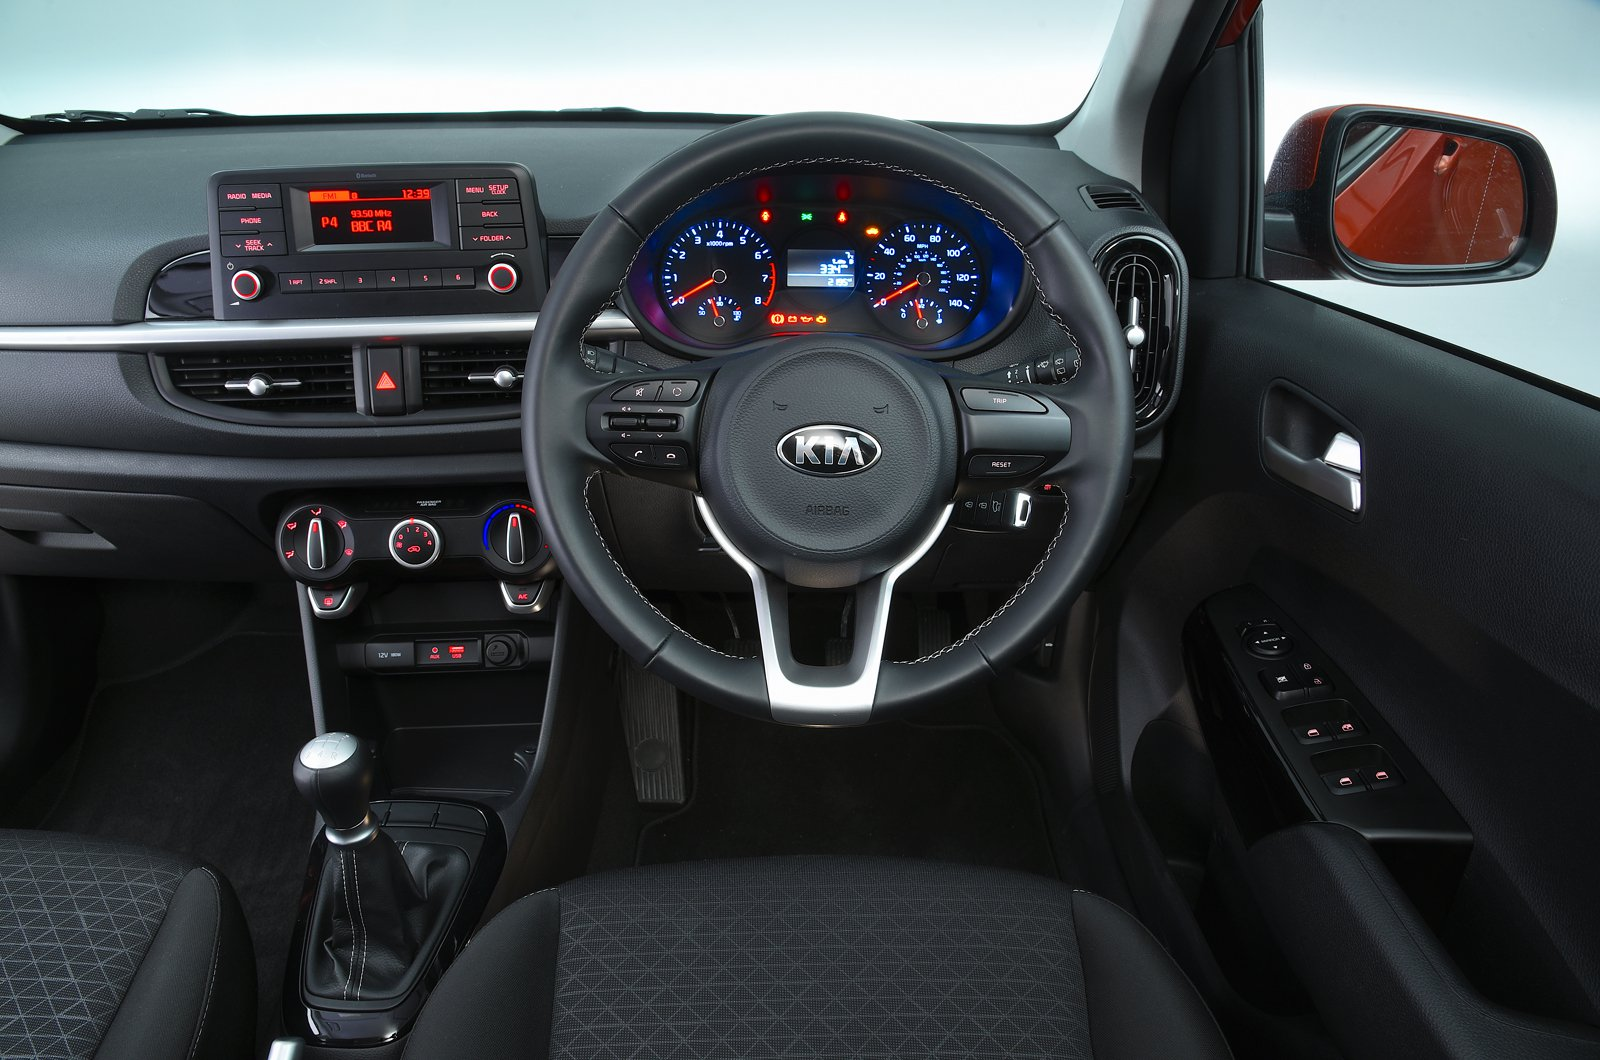 Kia Picanto dashboard - 69-plate car